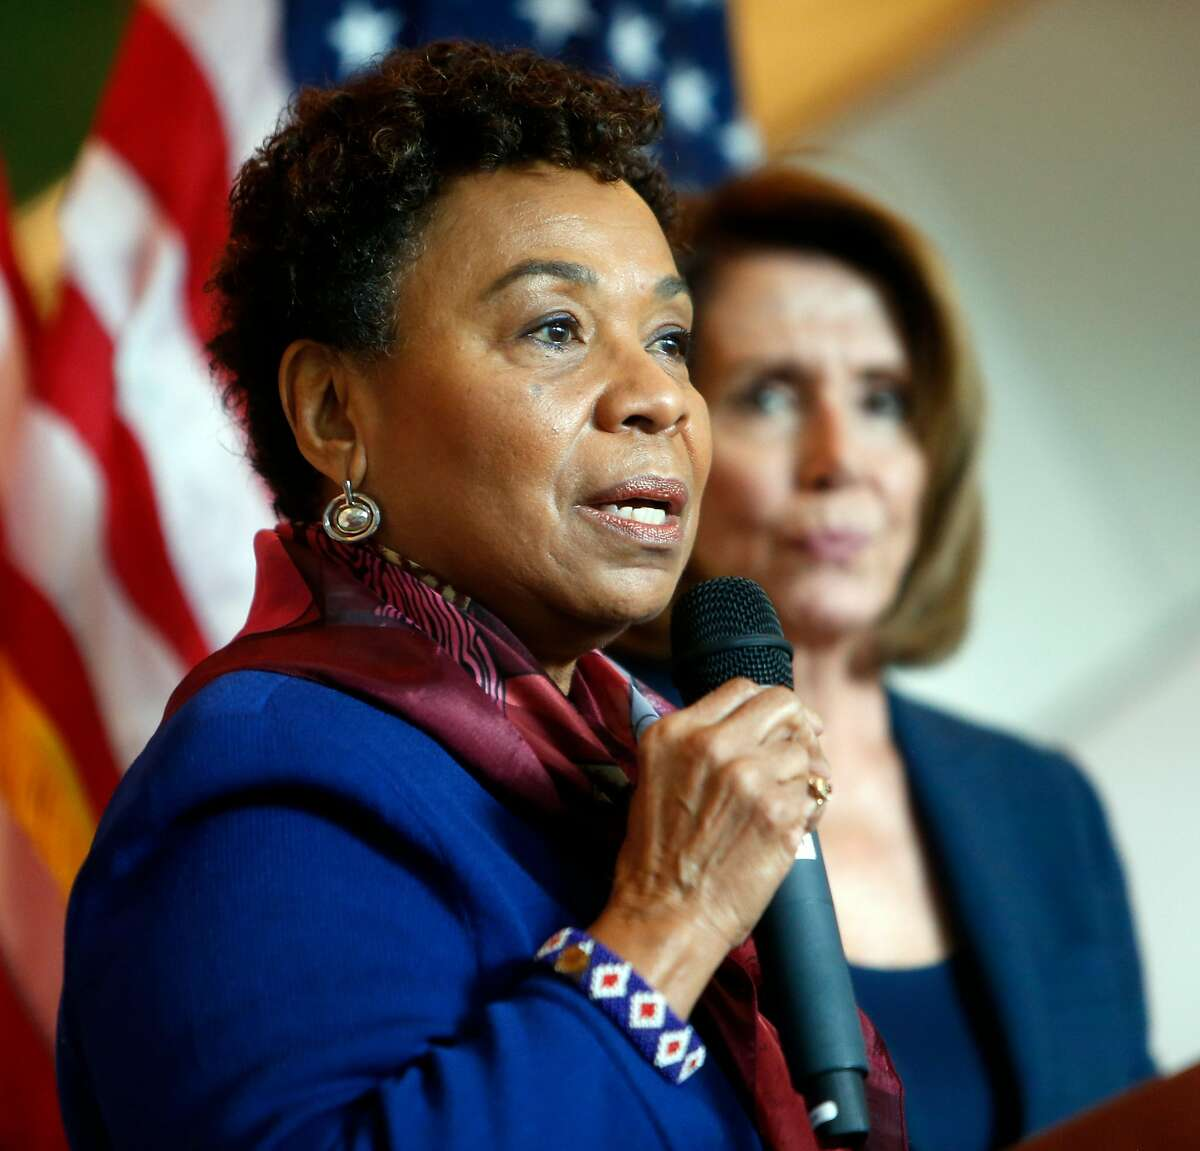 Congresswoman Barbara Lee introduces fellow Congresswoman Nancy Pelosi during press conference, on the harmful effect of the possible repeal of the Affordable Care Act, at Zuckerberg San Francisco General Hospital in San Francisco, Calif., on Saturday, January 7, 2017.